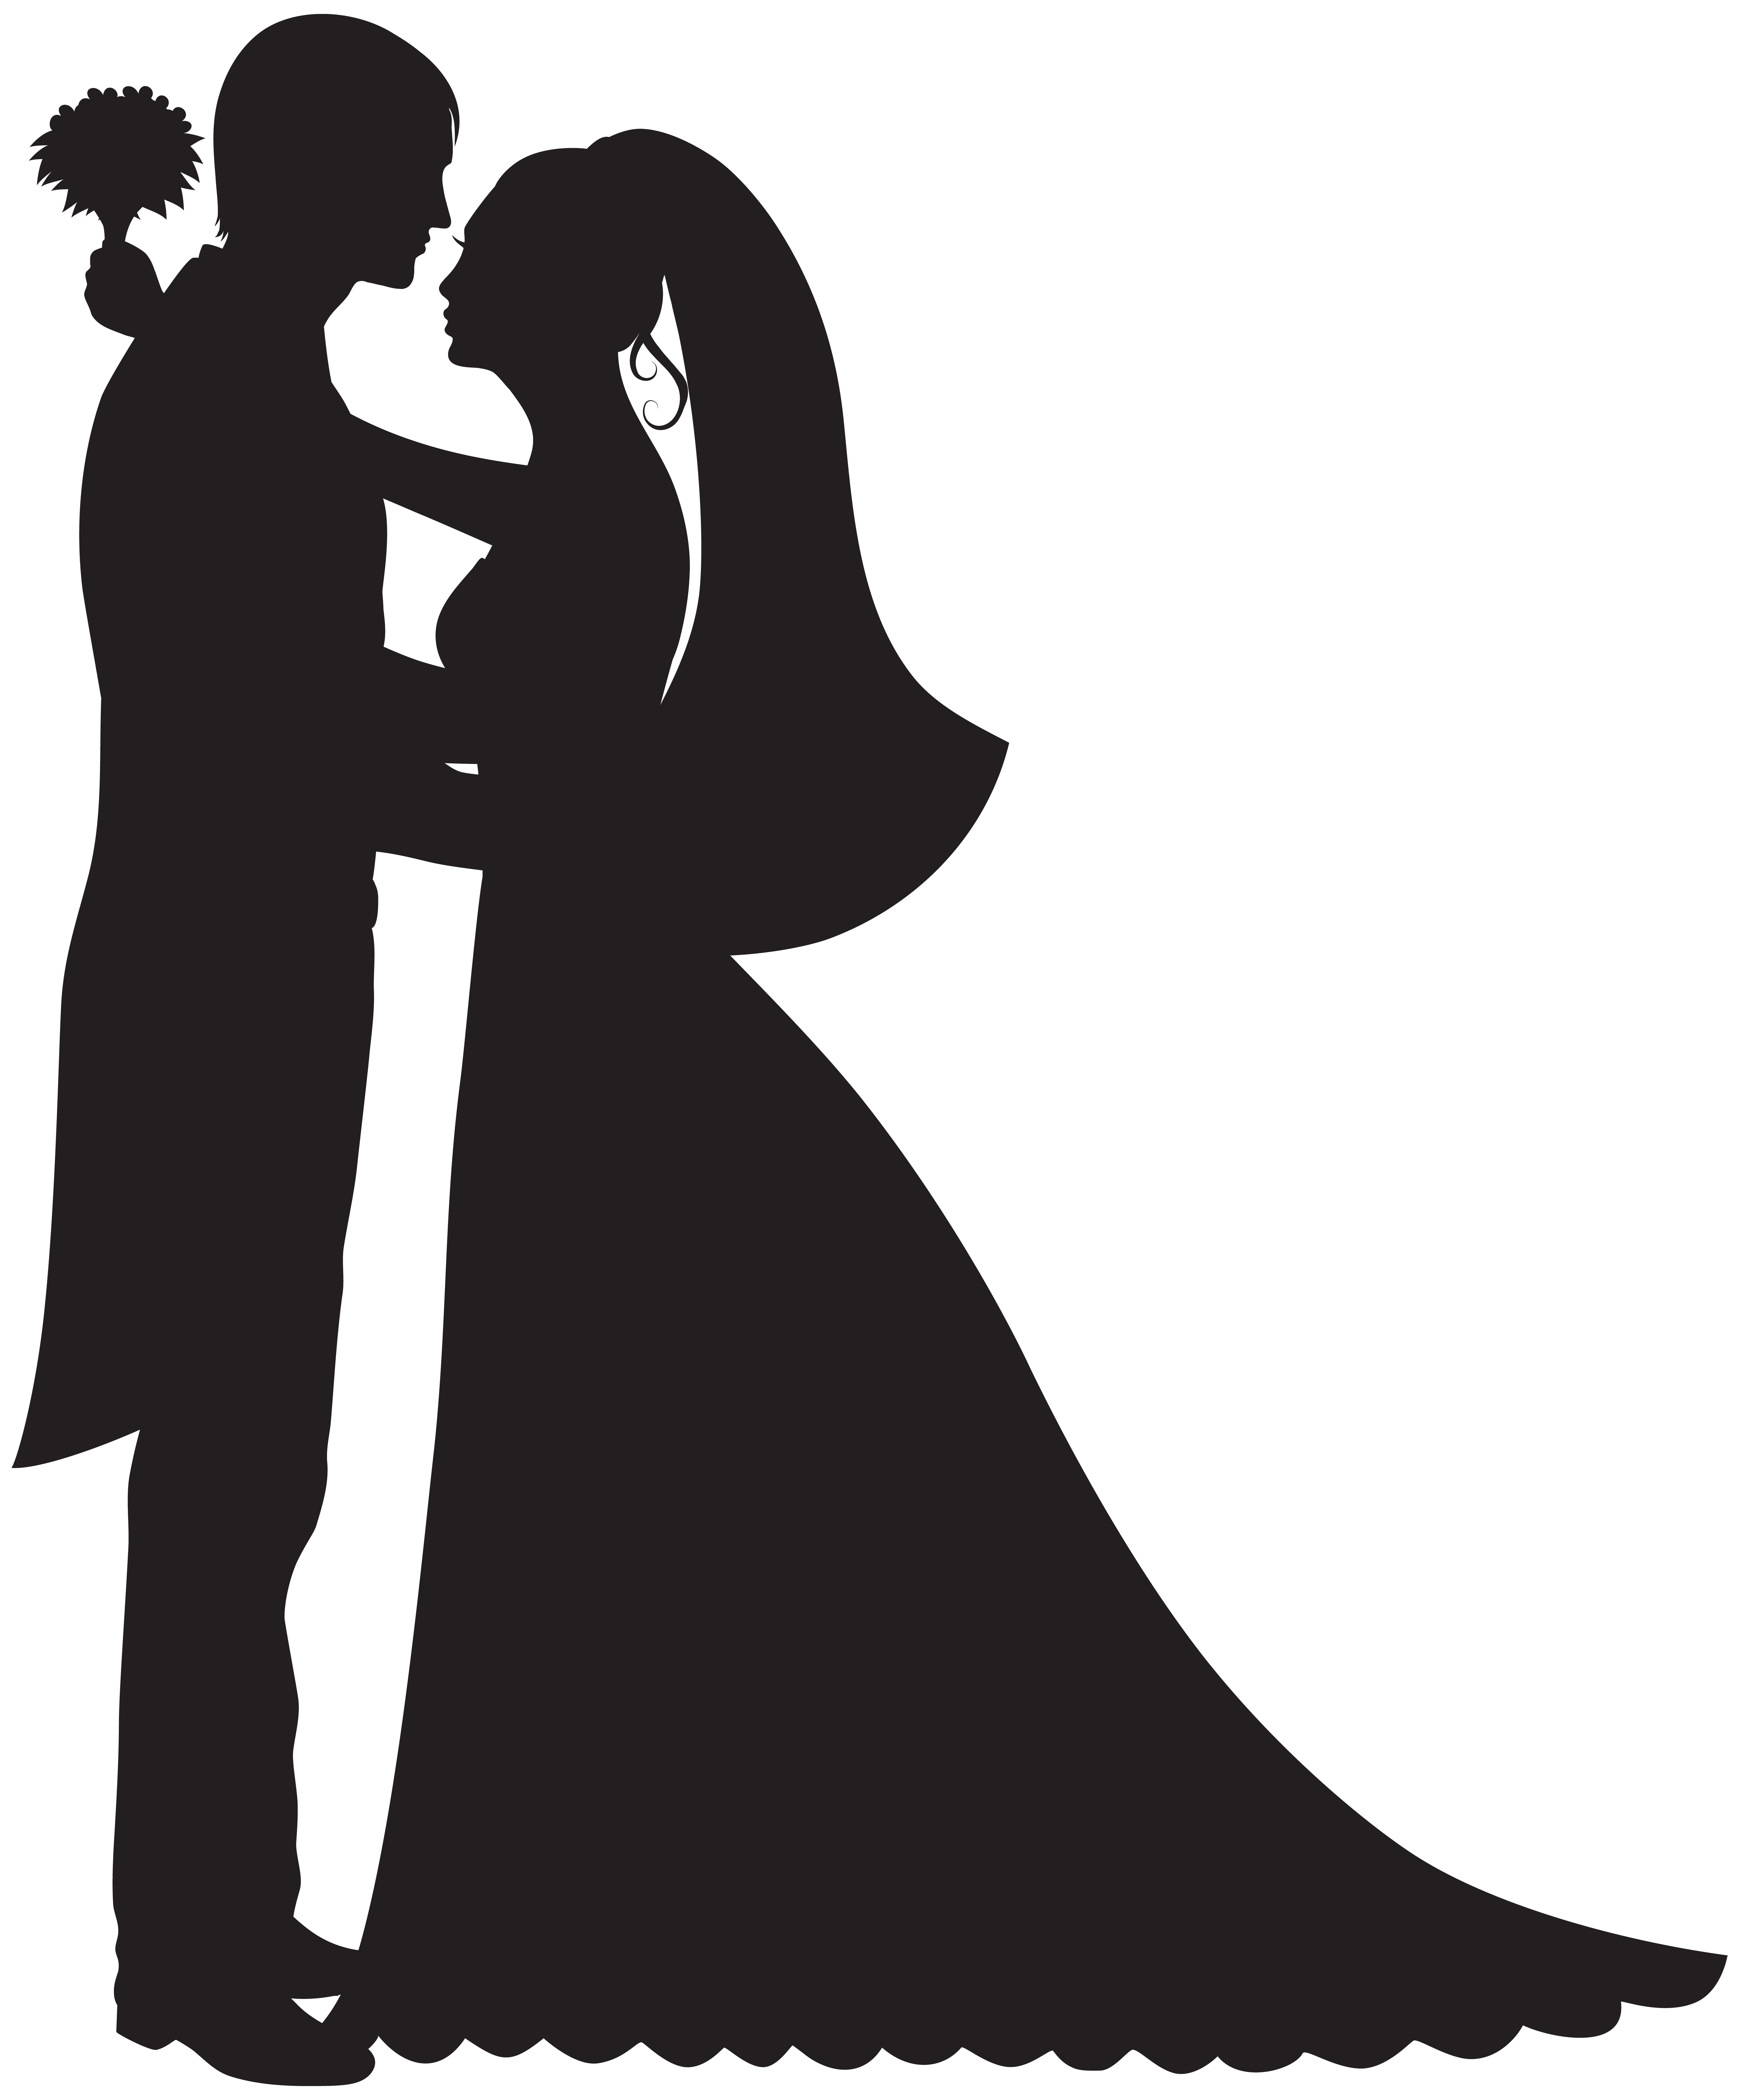 bride silhouette clip art at getdrawings com free for personal use rh getdrawings com groom clipart black and white dog groomer clipart